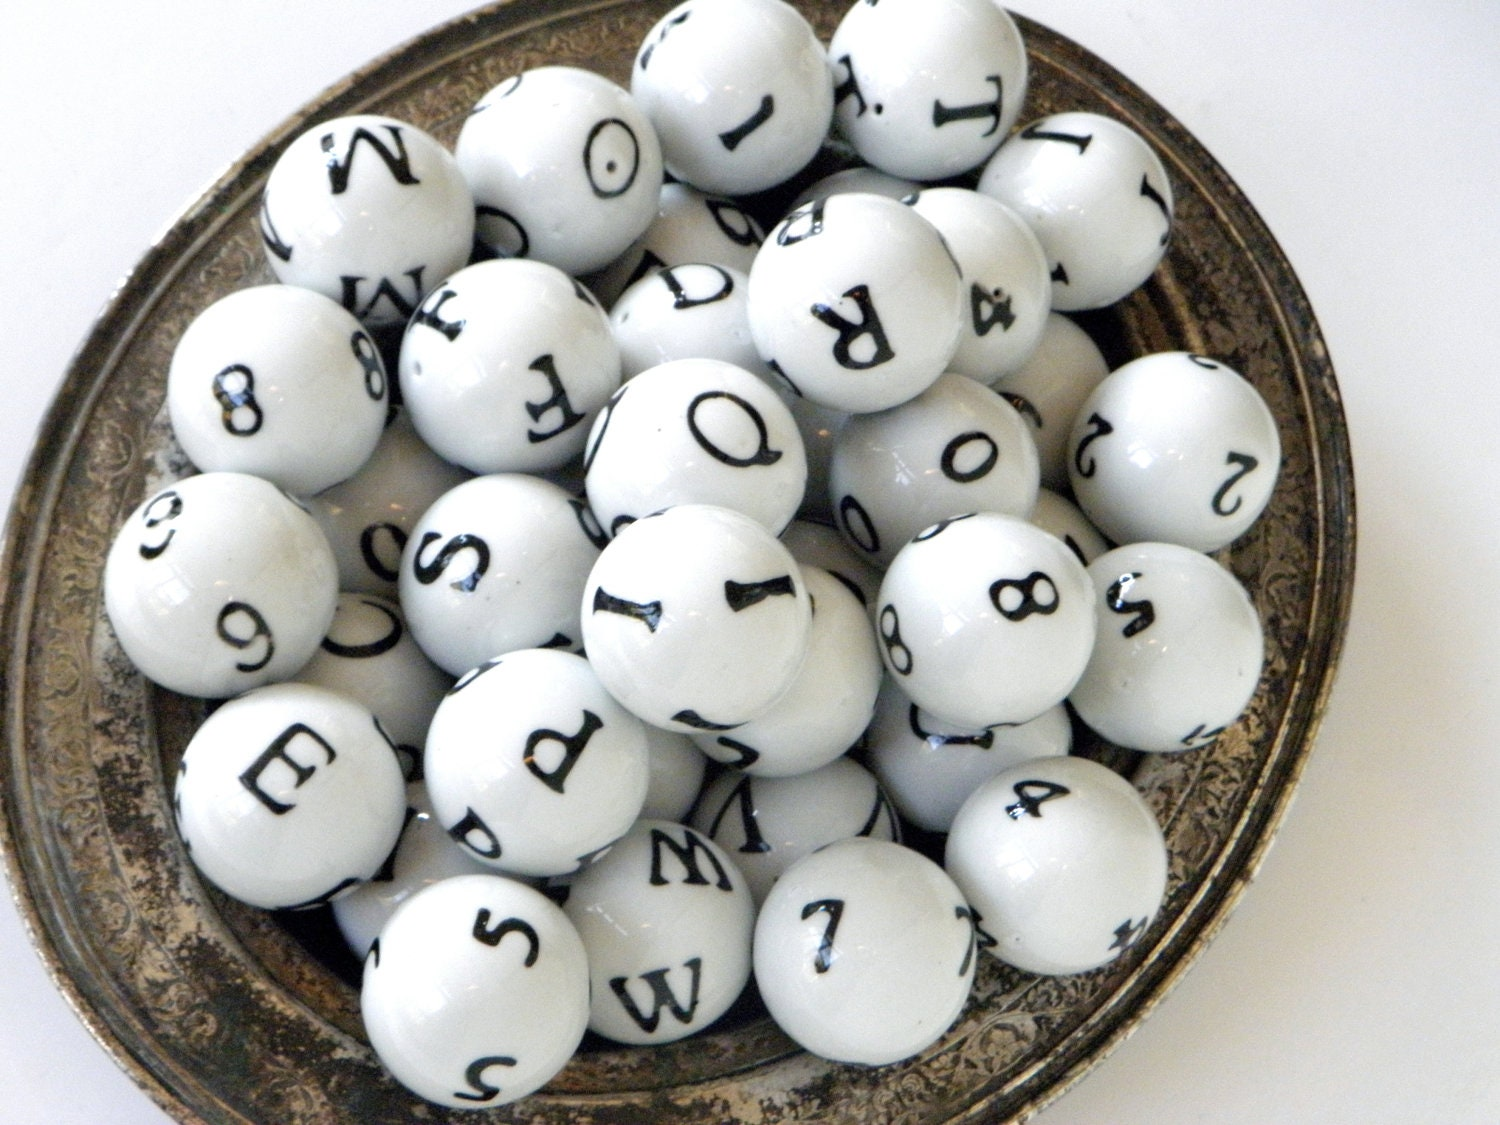 Porcelain decorative balls with numbers and letters set of